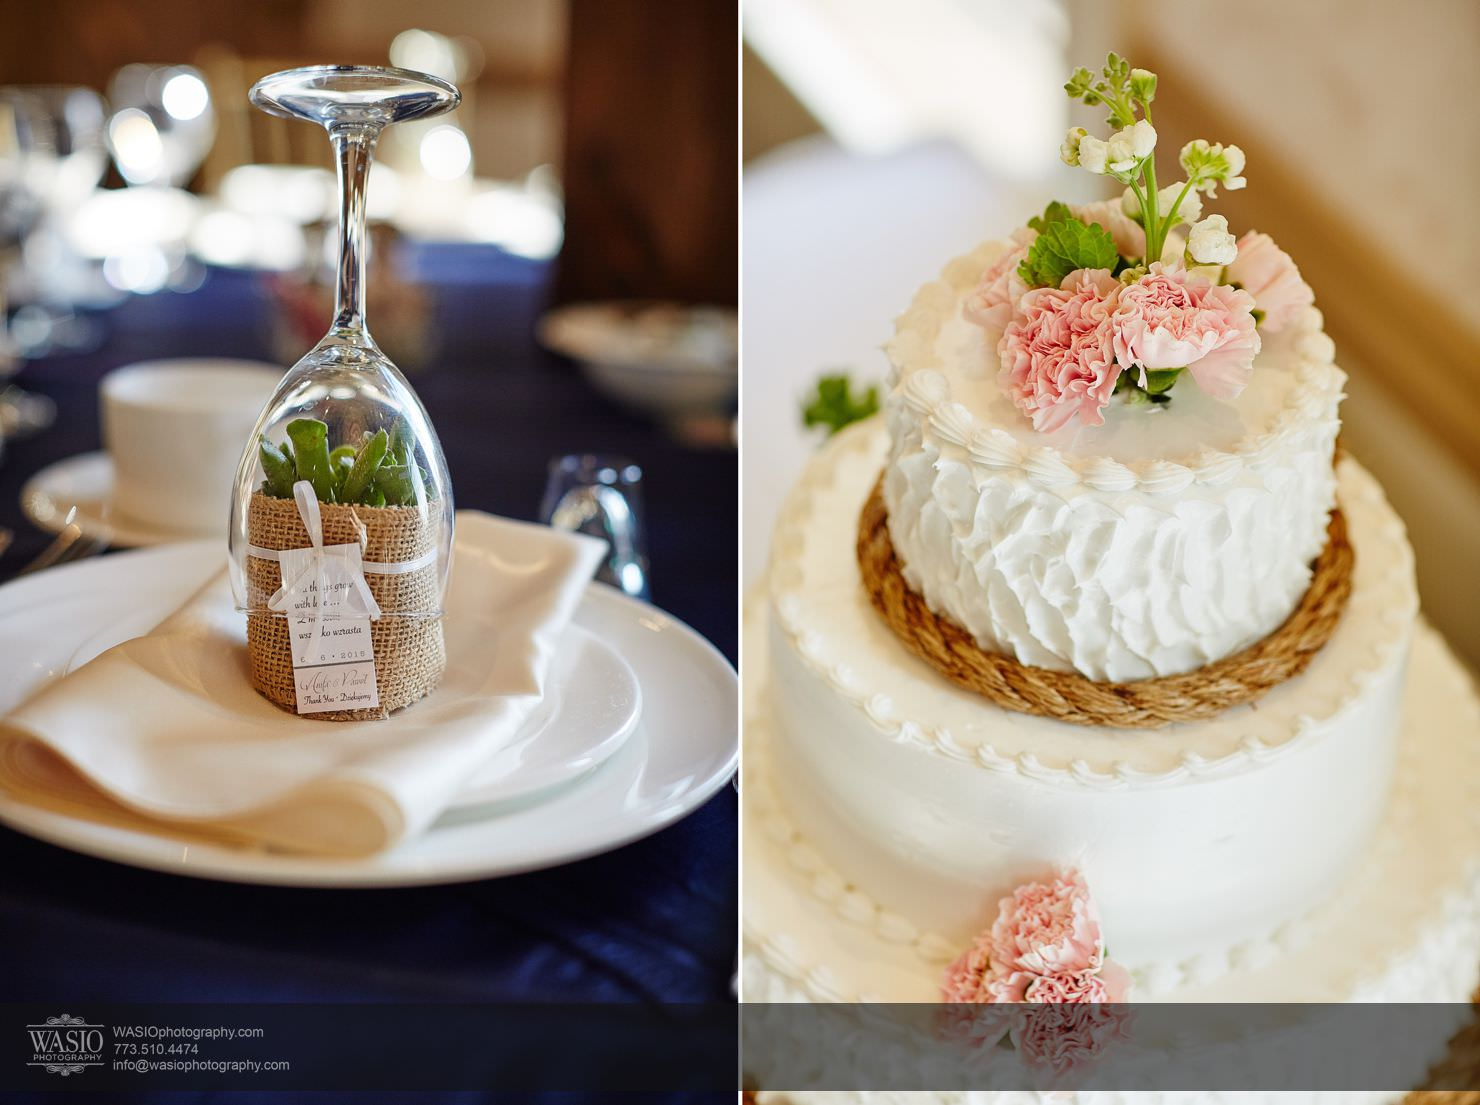 26_Lemont-Wedding_Anita-Pawel_26_Anita-Pawel-Lemont-Wedding_Anita-Blog1 Lemont Wedding - Anita + Pawel